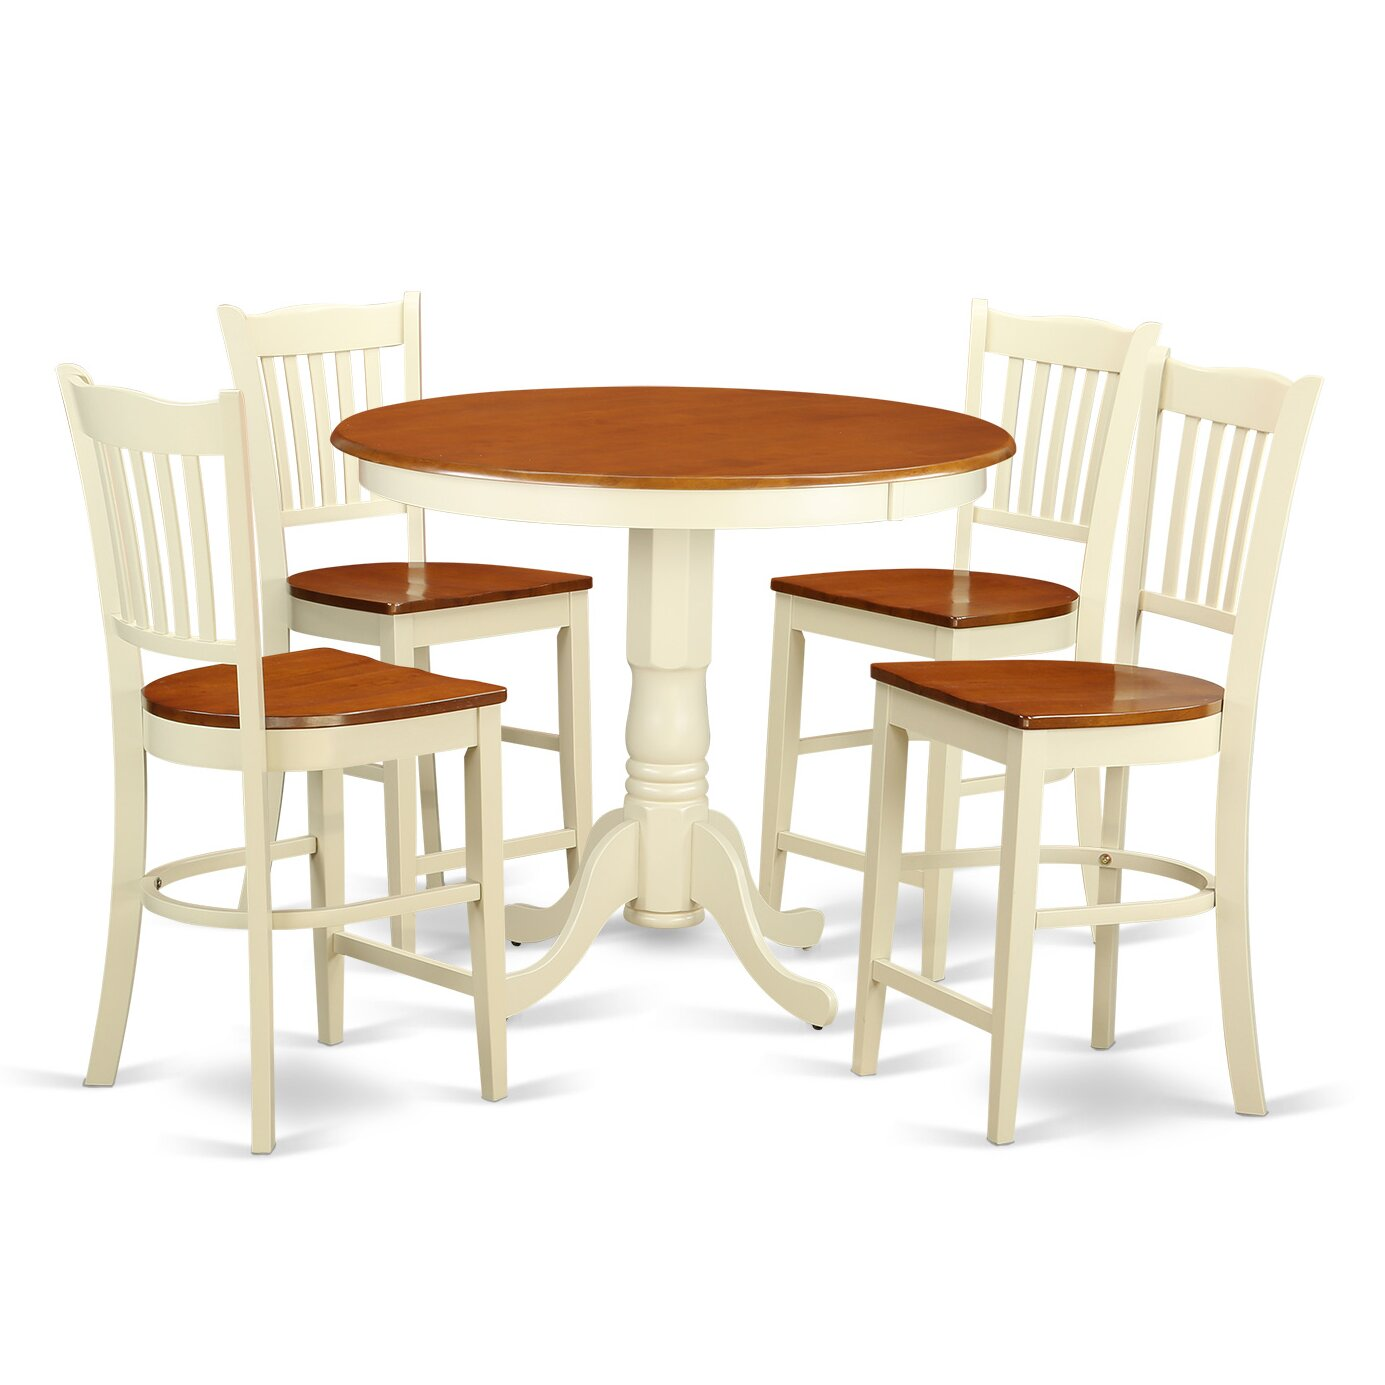 East west jackson 5 piece counter height pub table set for High top dinette sets